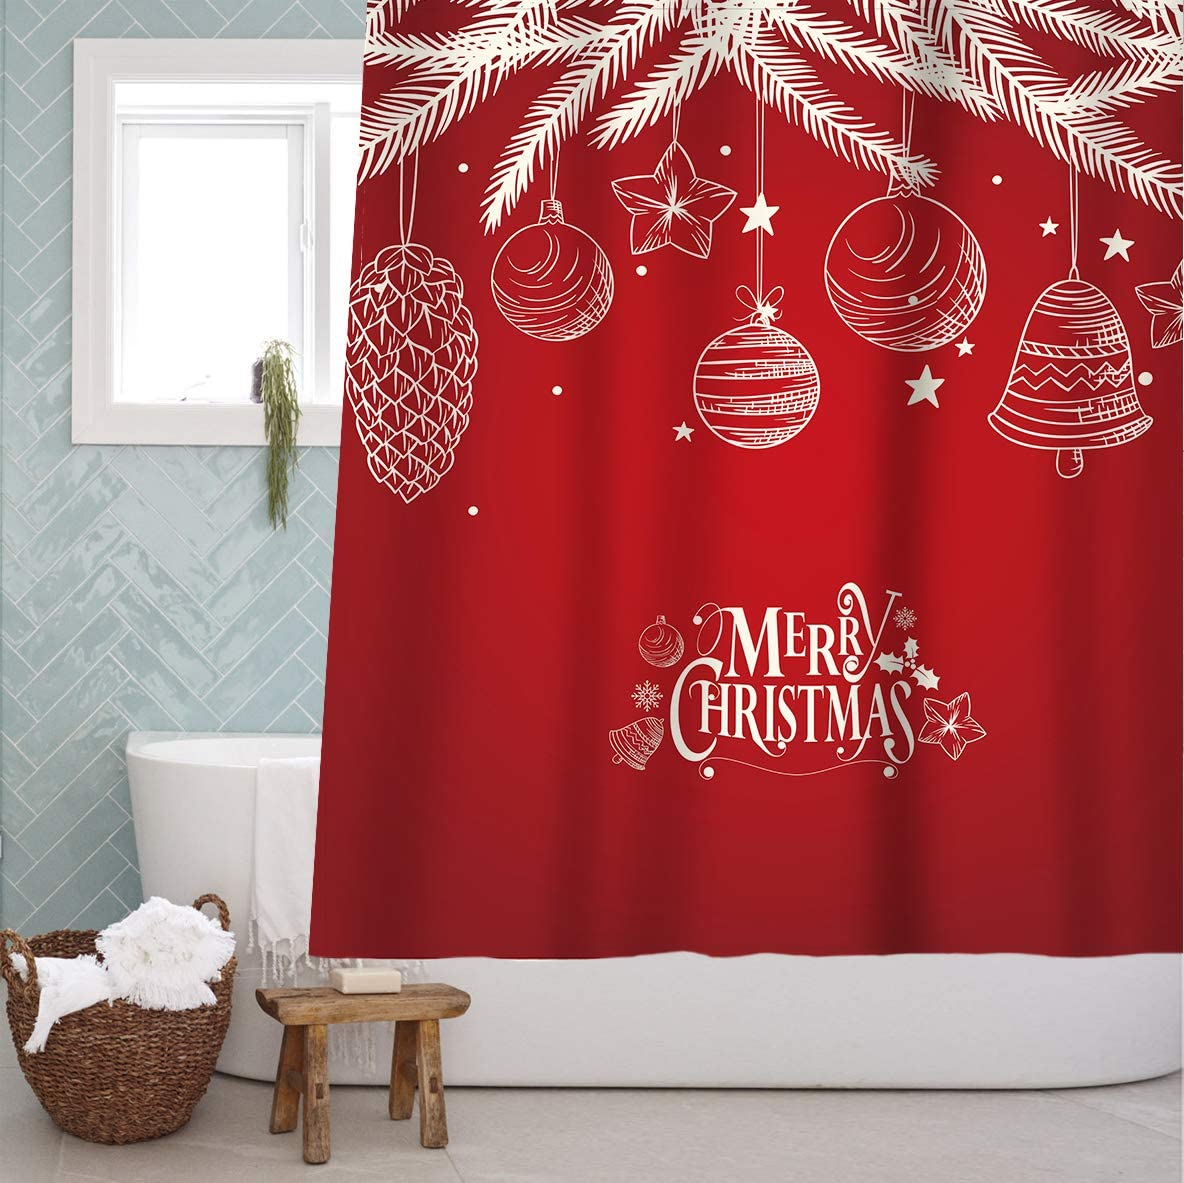 Merry Wave Fabric Shower Curtain Bathroom Home Office Holiday Wall Decoration as Tapestry and Photo Booth Backdrop